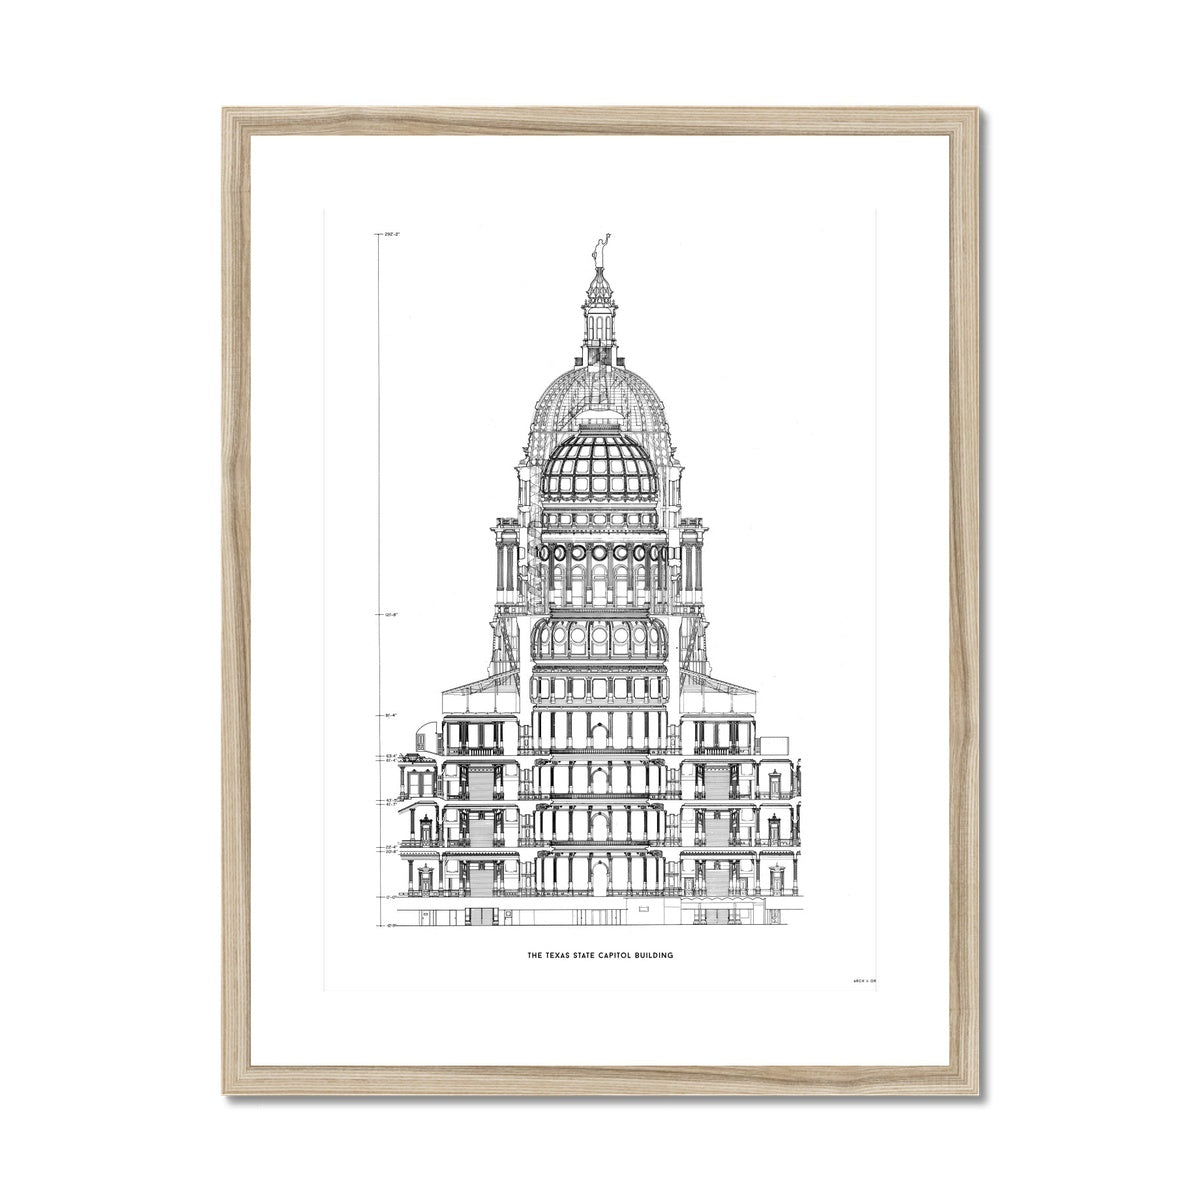 The Texas State Capitol Building - Rotunda Cross Section - White -  Framed & Mounted Print